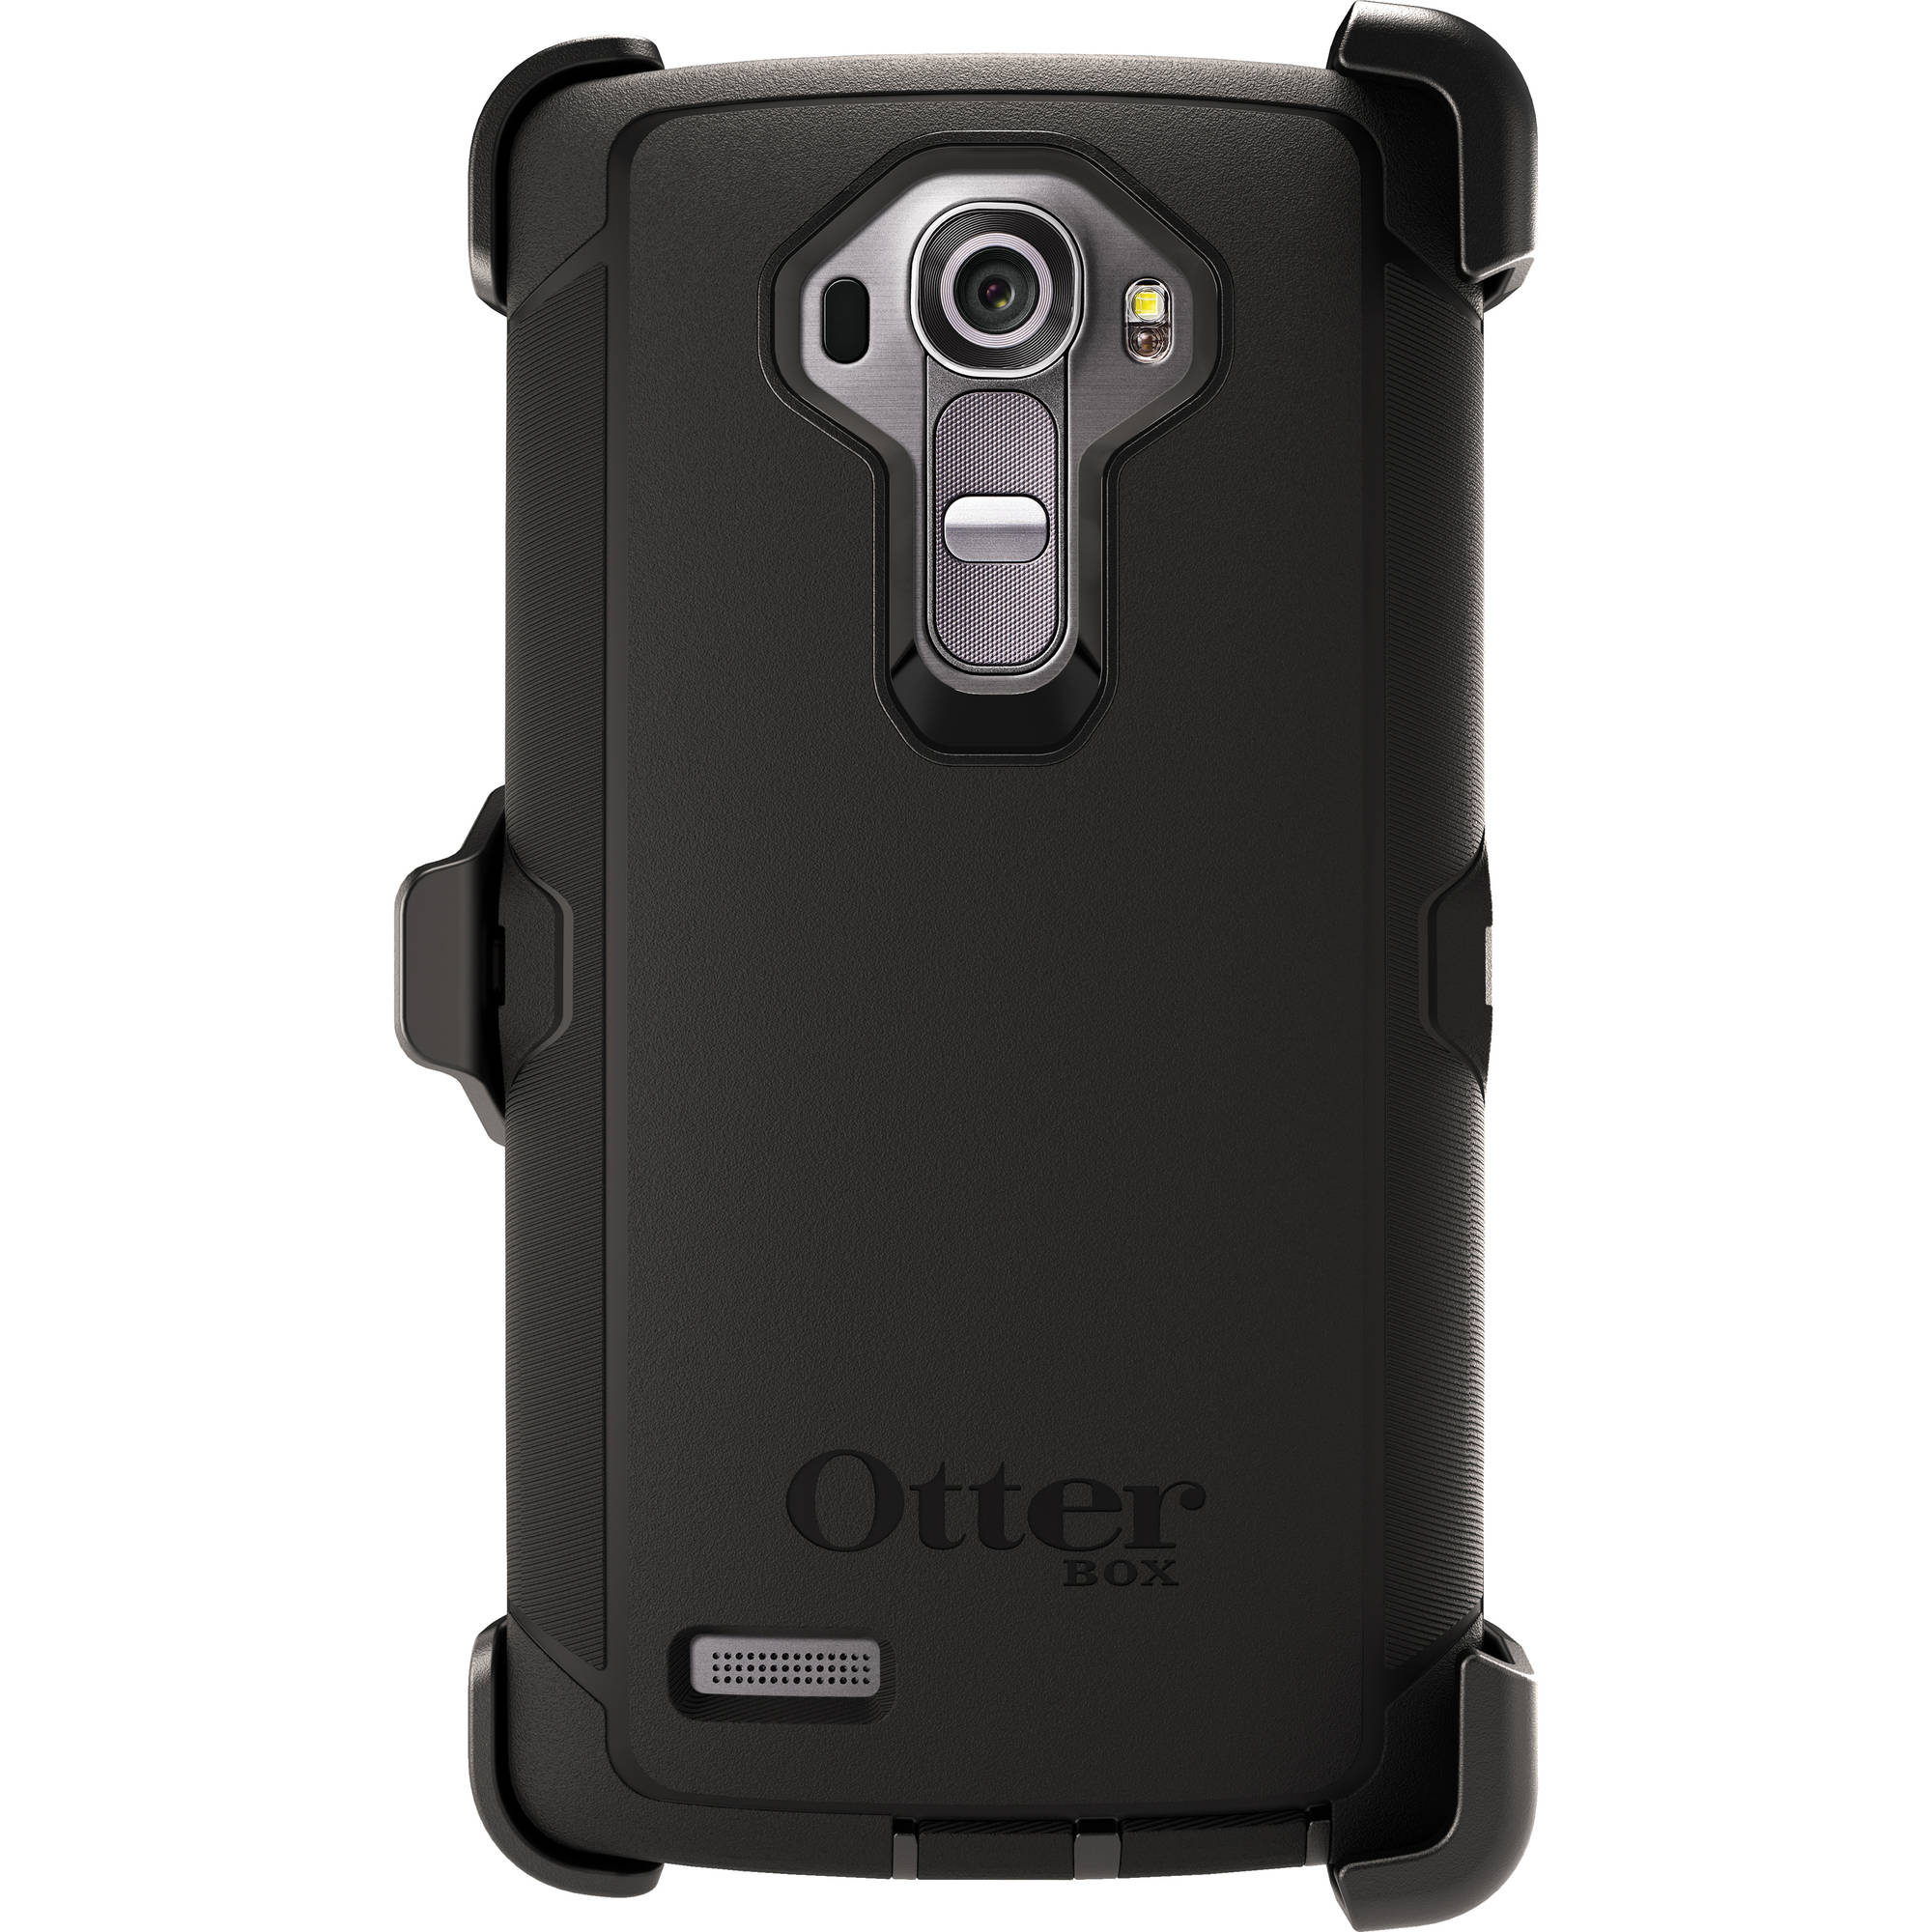 Lg phone clipart vector library OtterBox Defender Series Case for LG G4 vector library